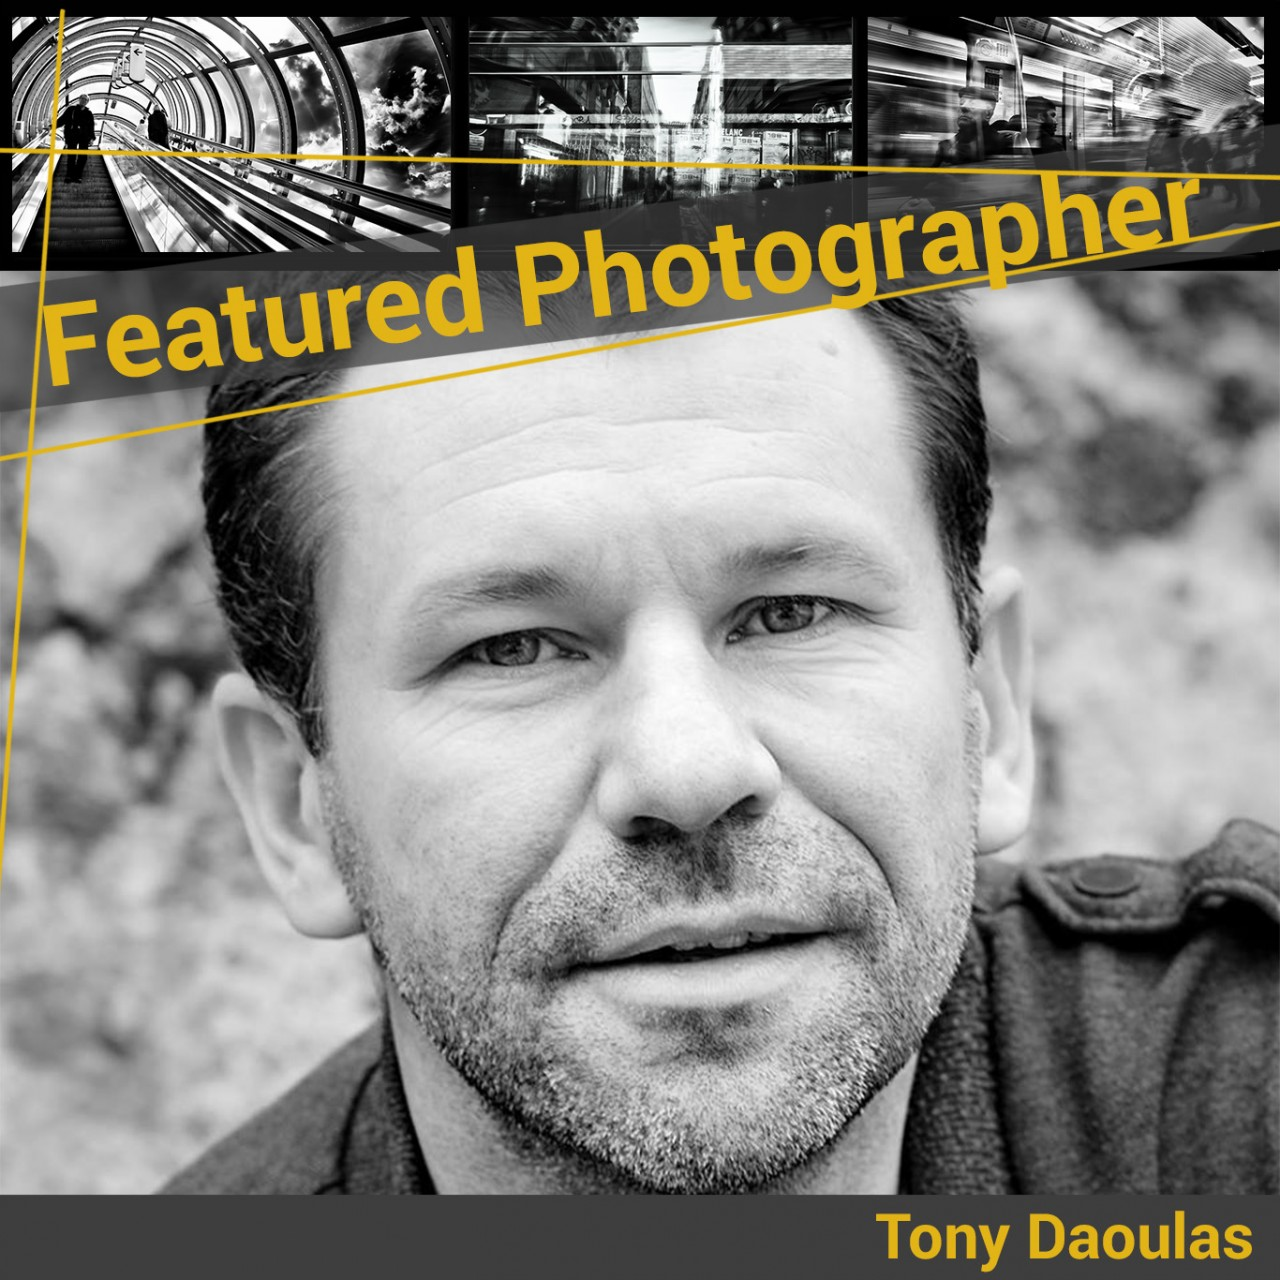 Templatet Featured Photographertd